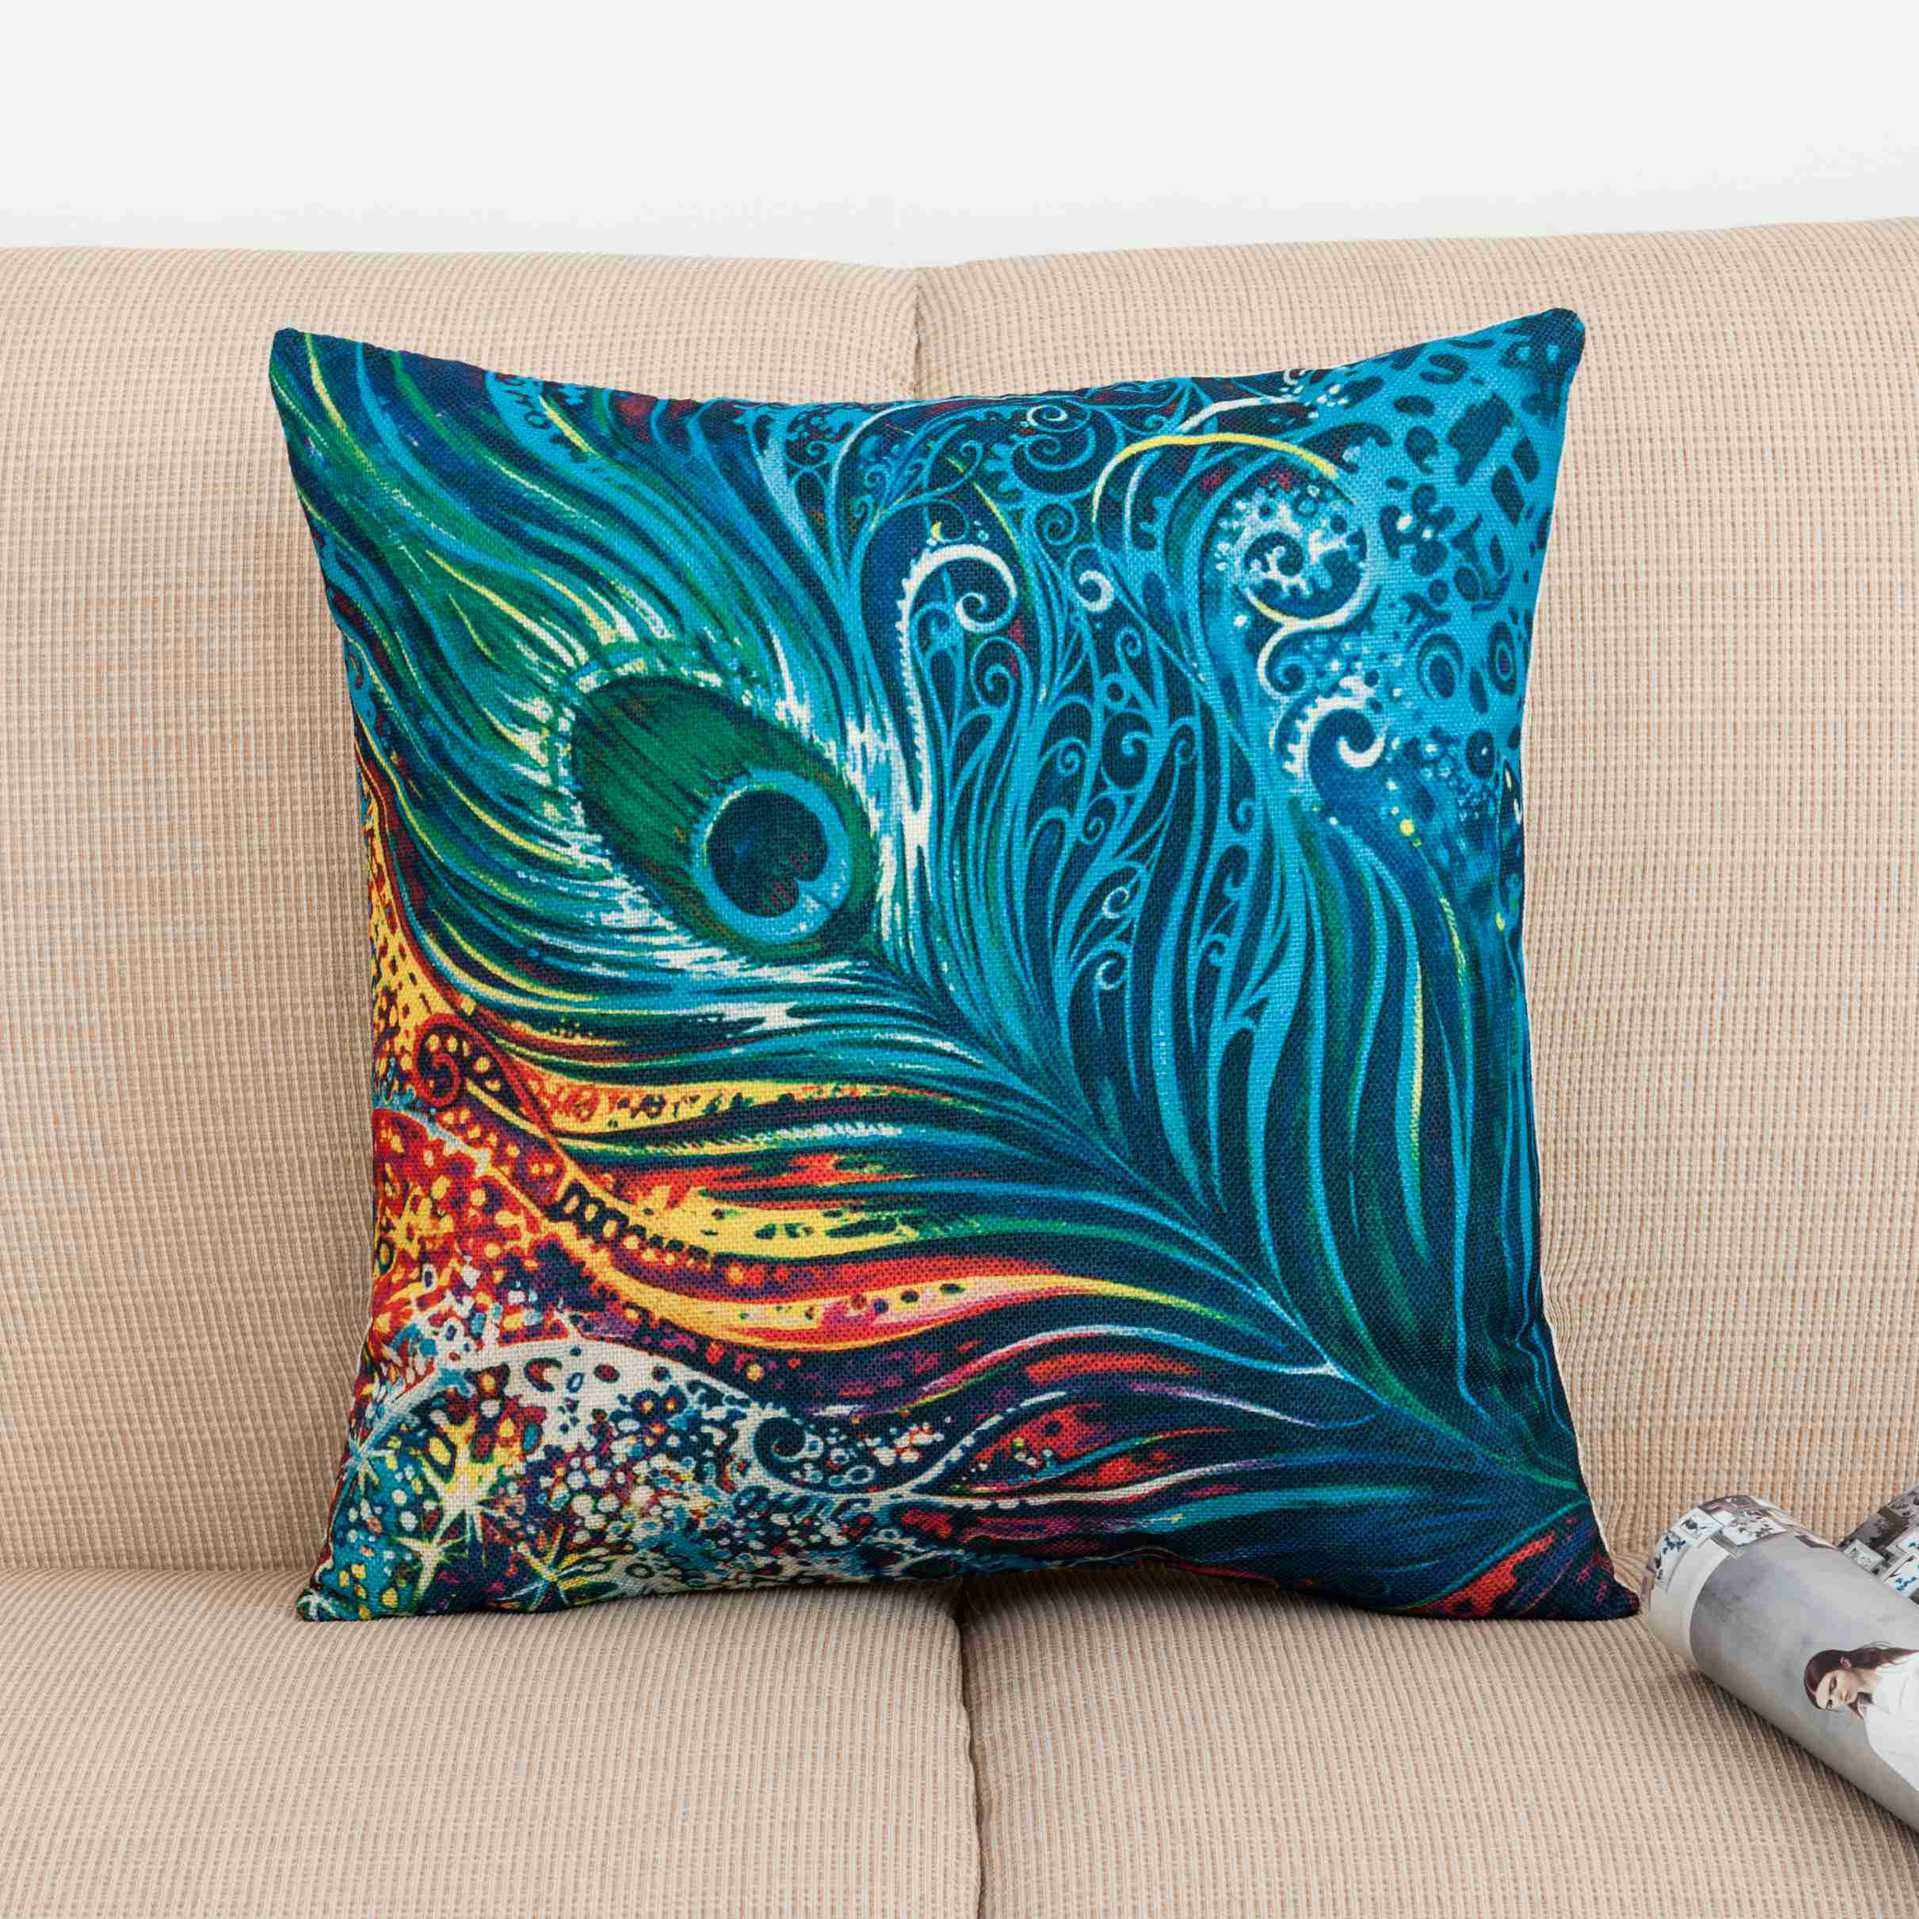 Peacock Tribal Seamless Feathers Girly Teal Print Custom Car Cushion Cover Decorative Throw Pillowcase Pillow Cases Home Decor